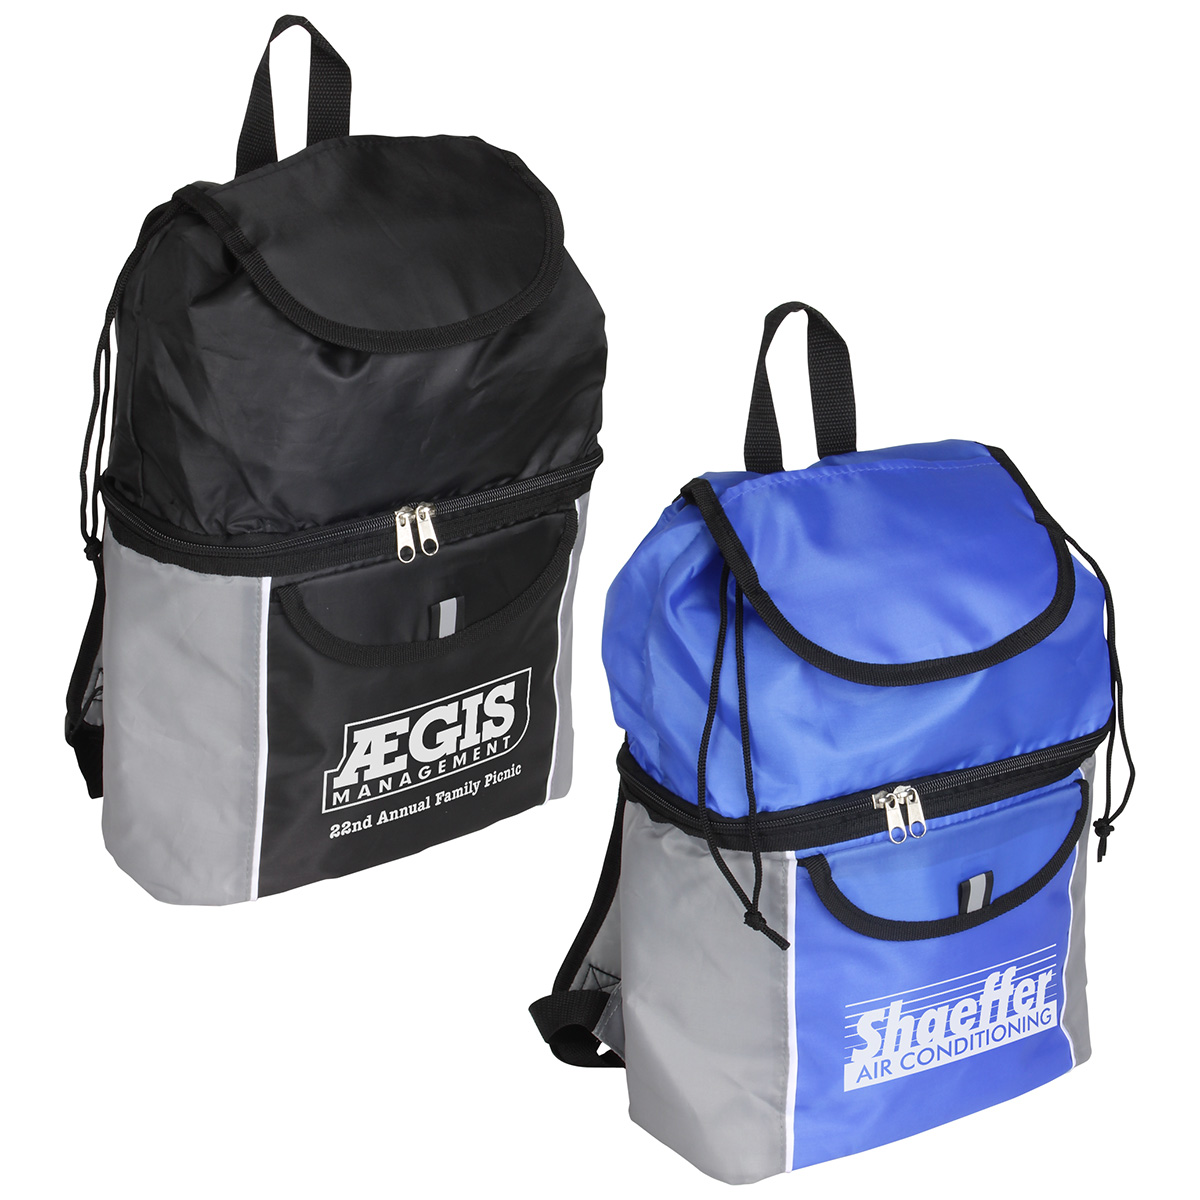 Journey Cooler Backpack, WBA-JC12 - 1 Colour Imprint